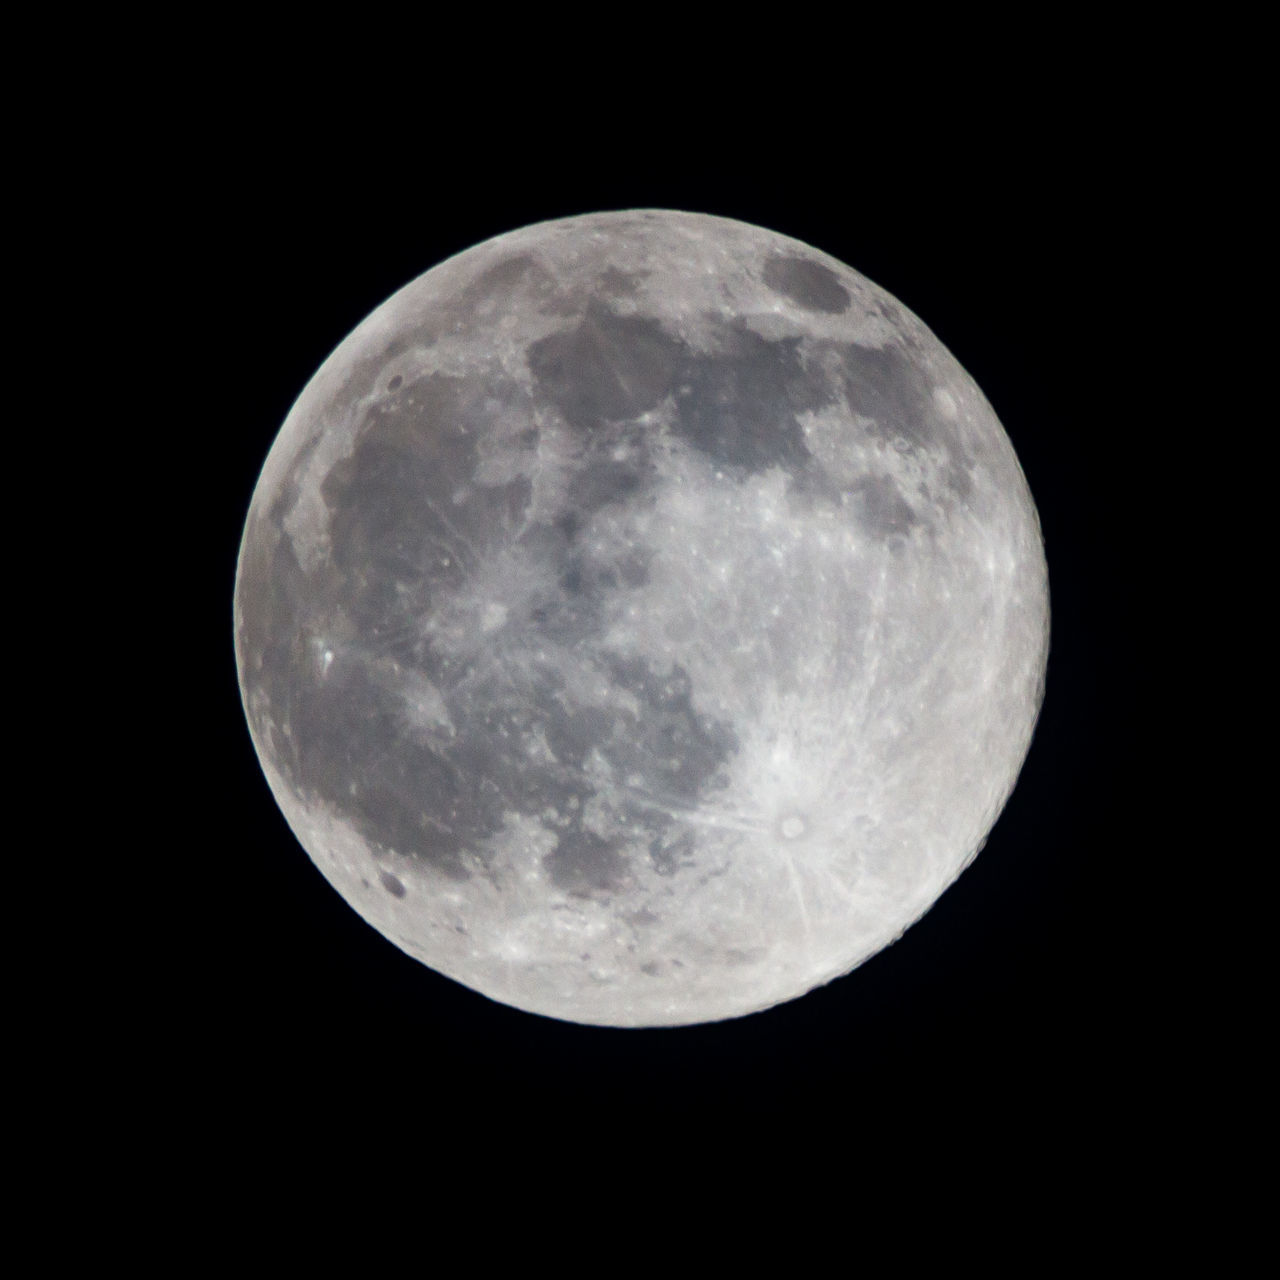 LOW ANGLE VIEW OF FULL MOON AGAINST BLACK SKY